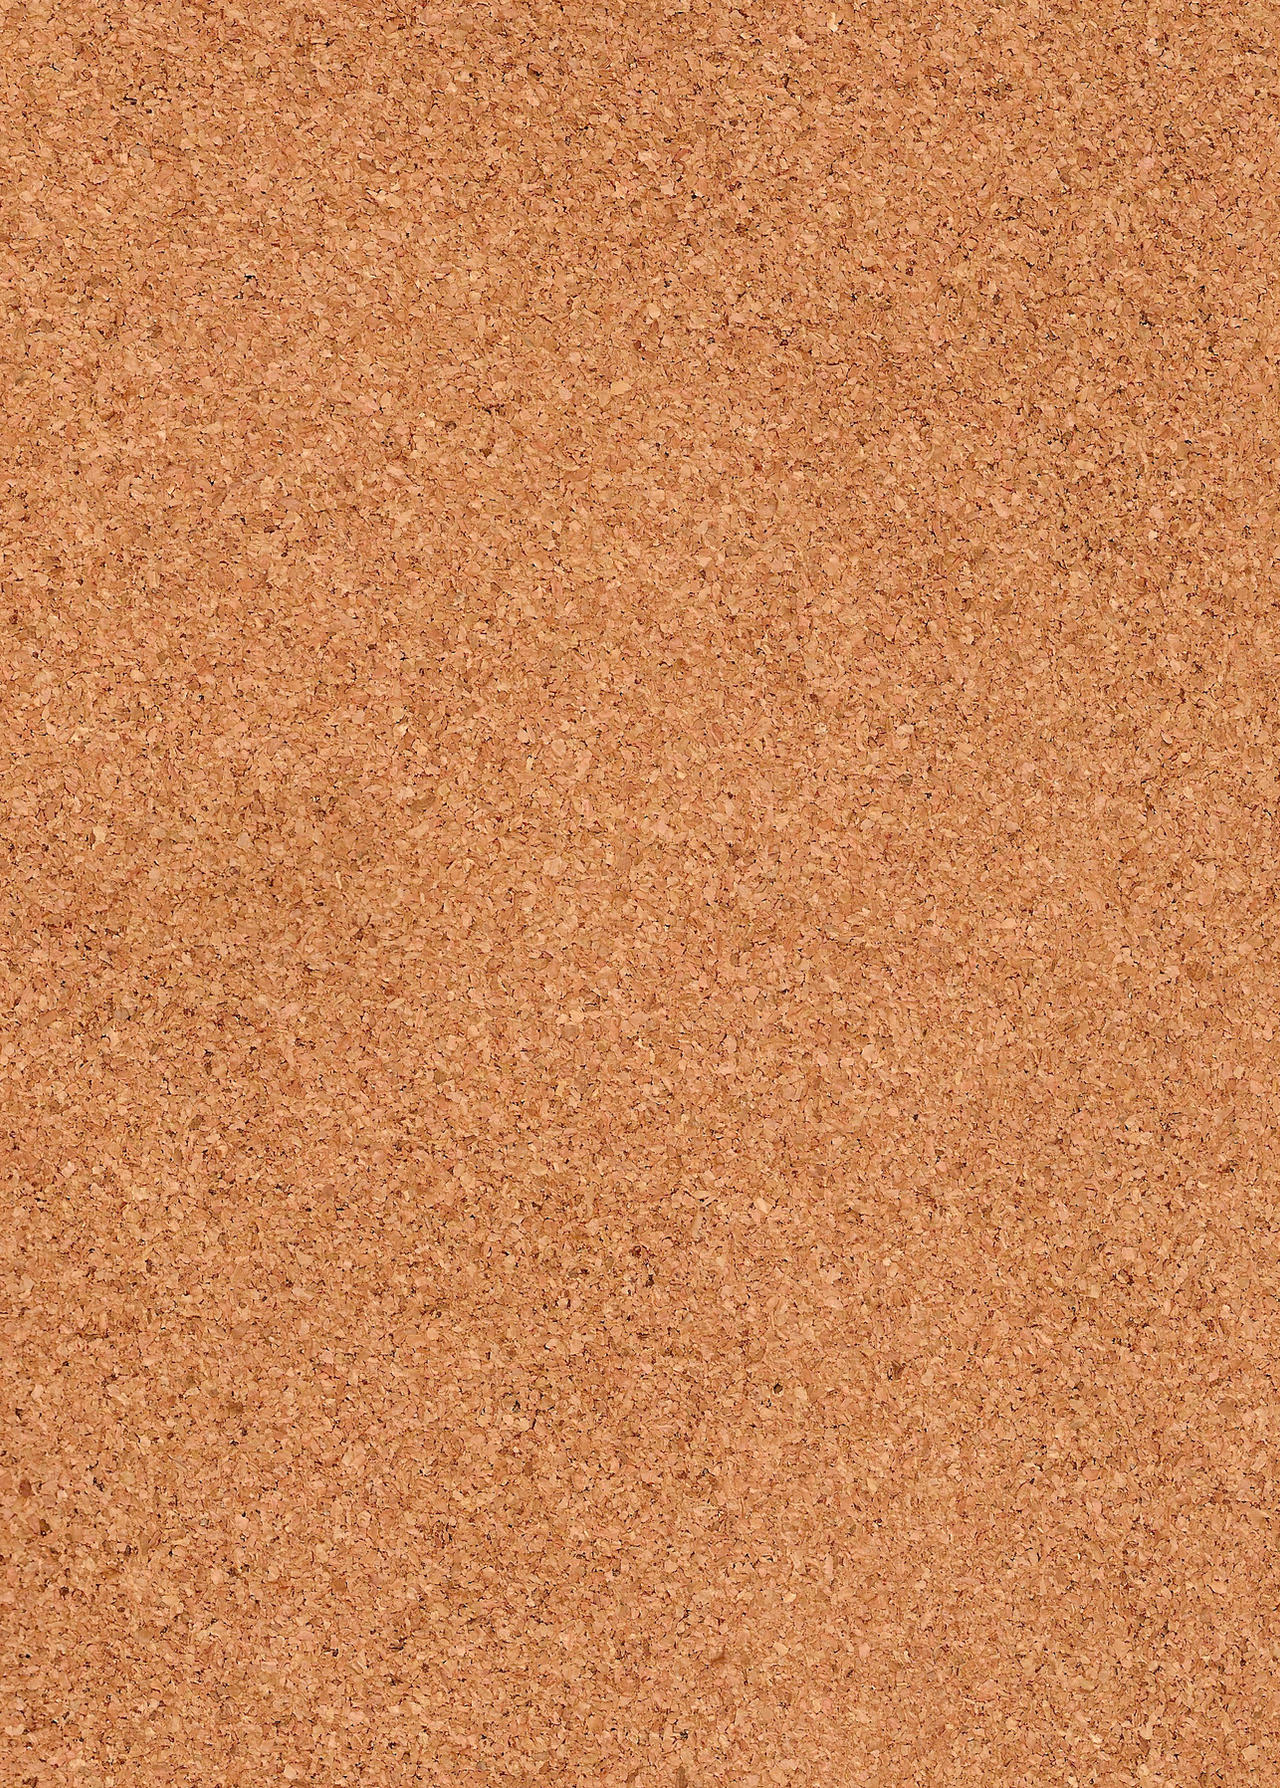 cork texture background stock-#32